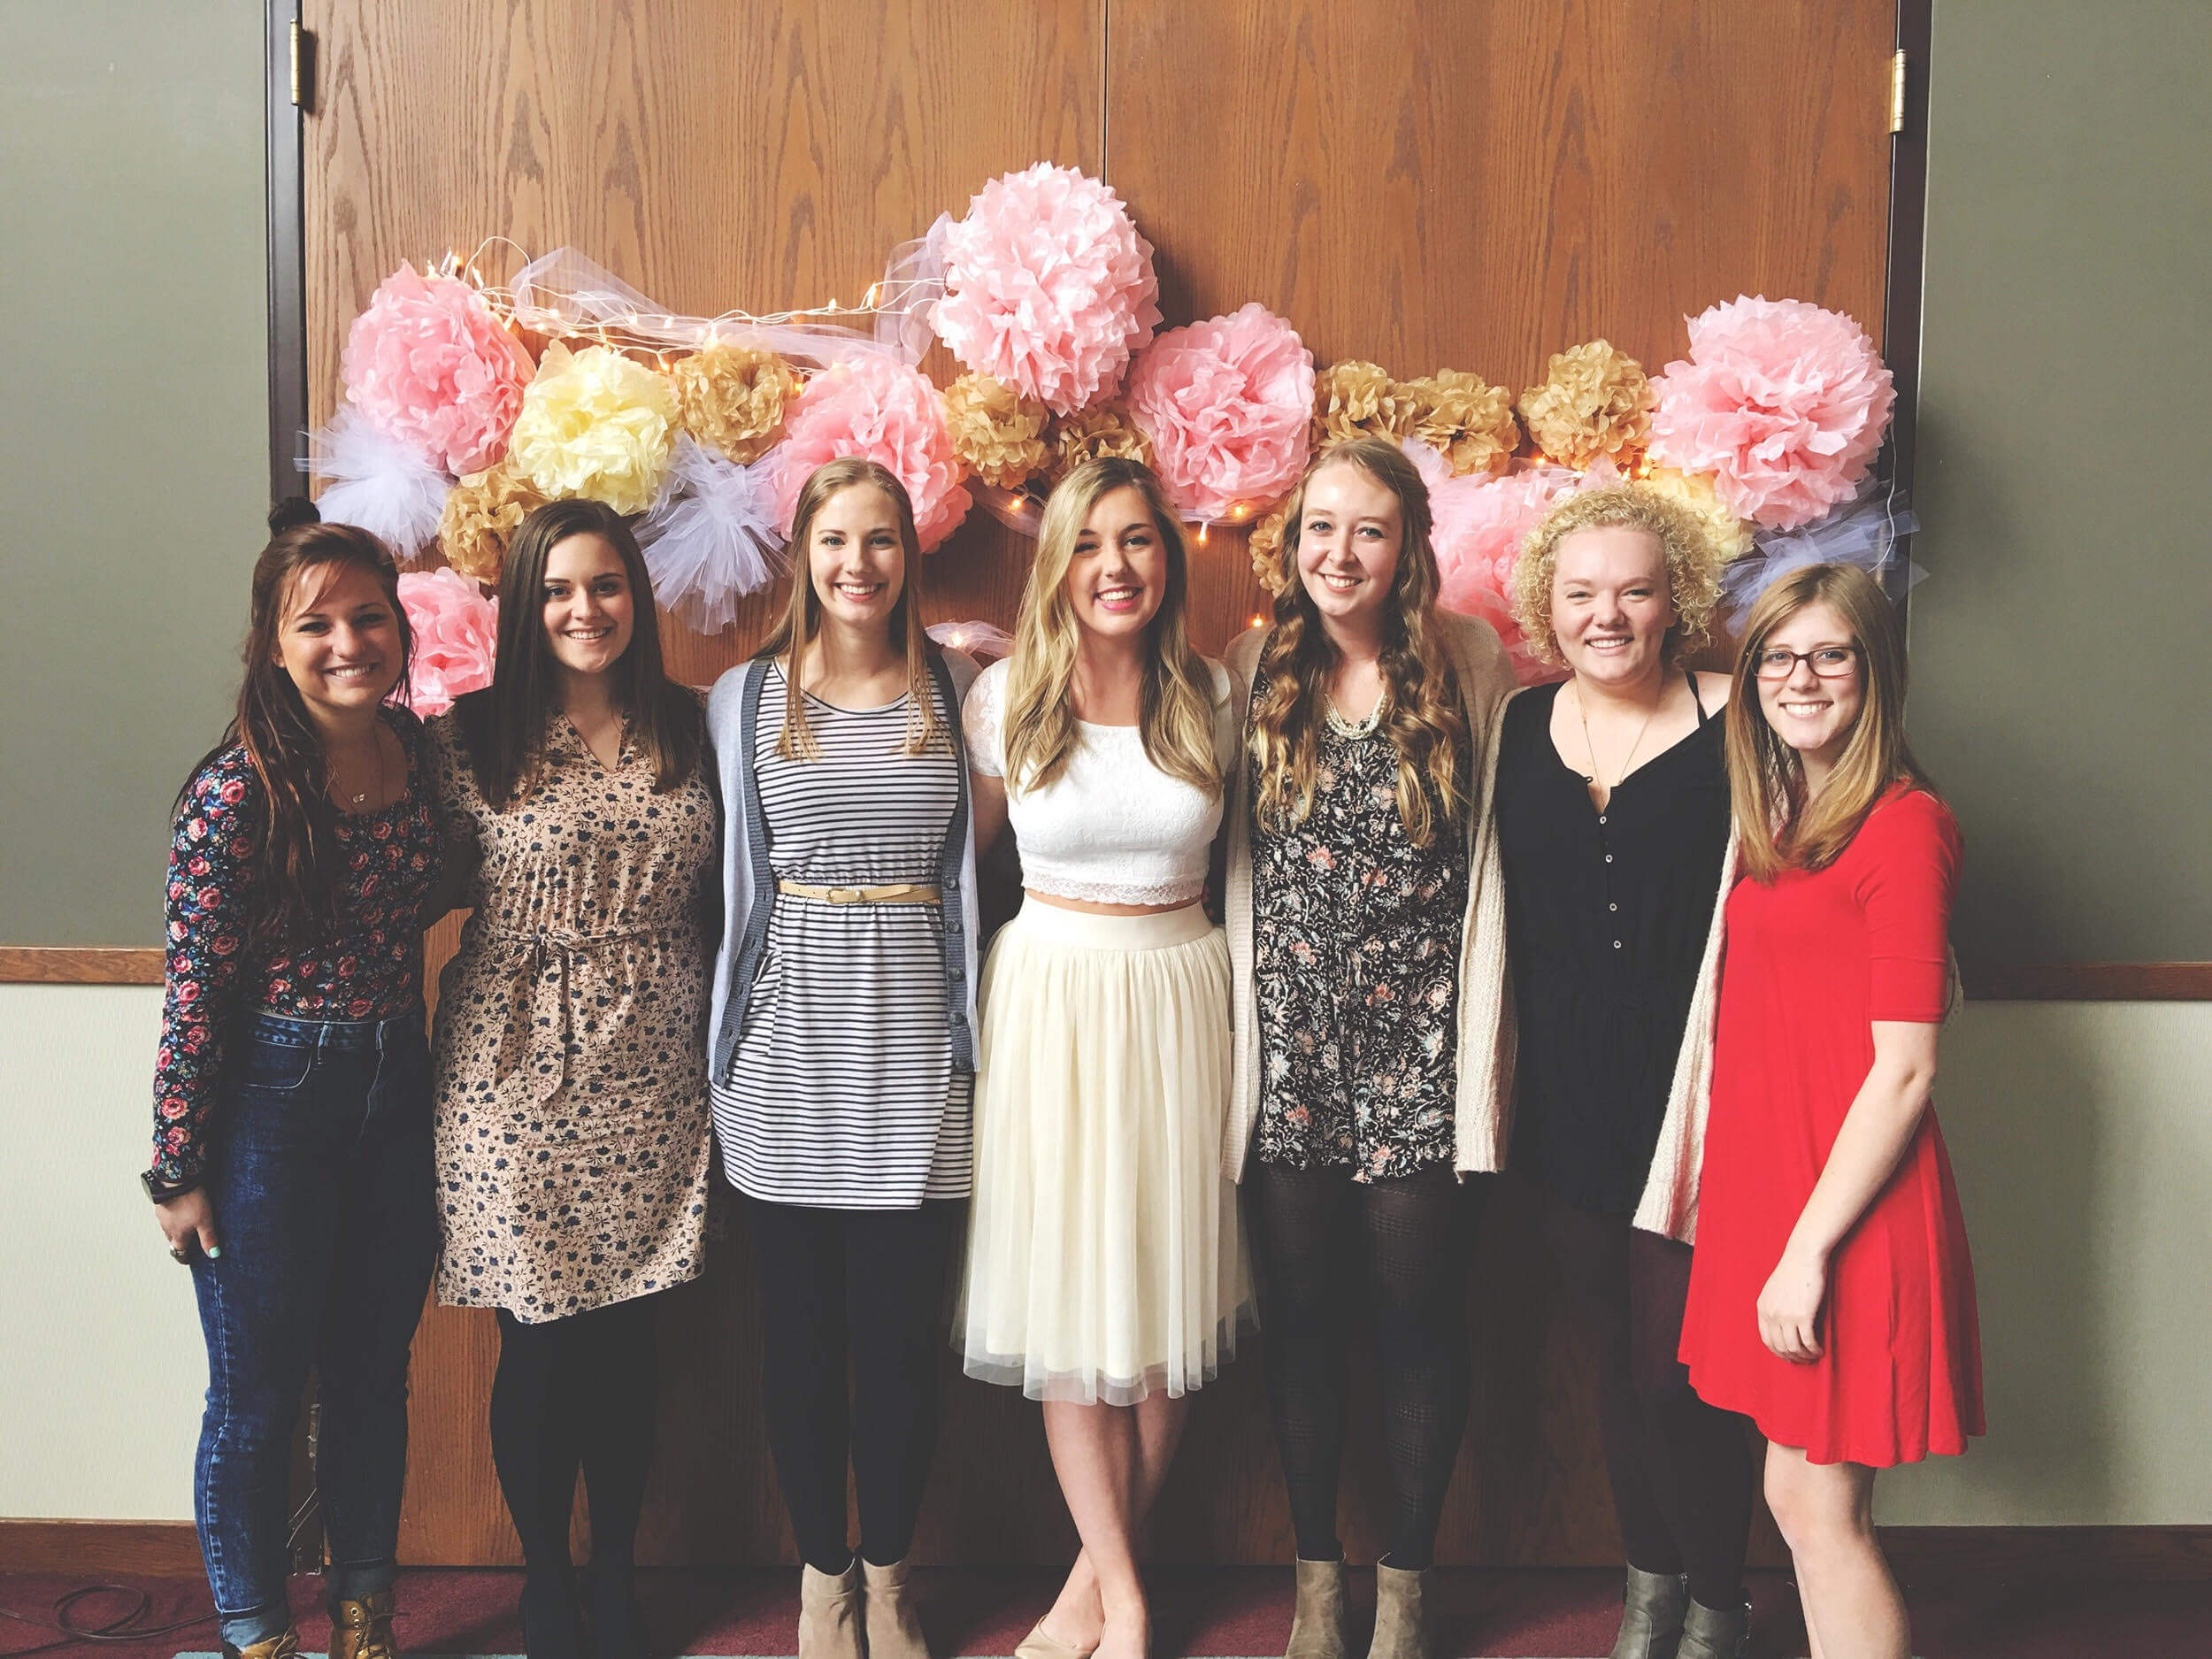 group of girls at bridal shower